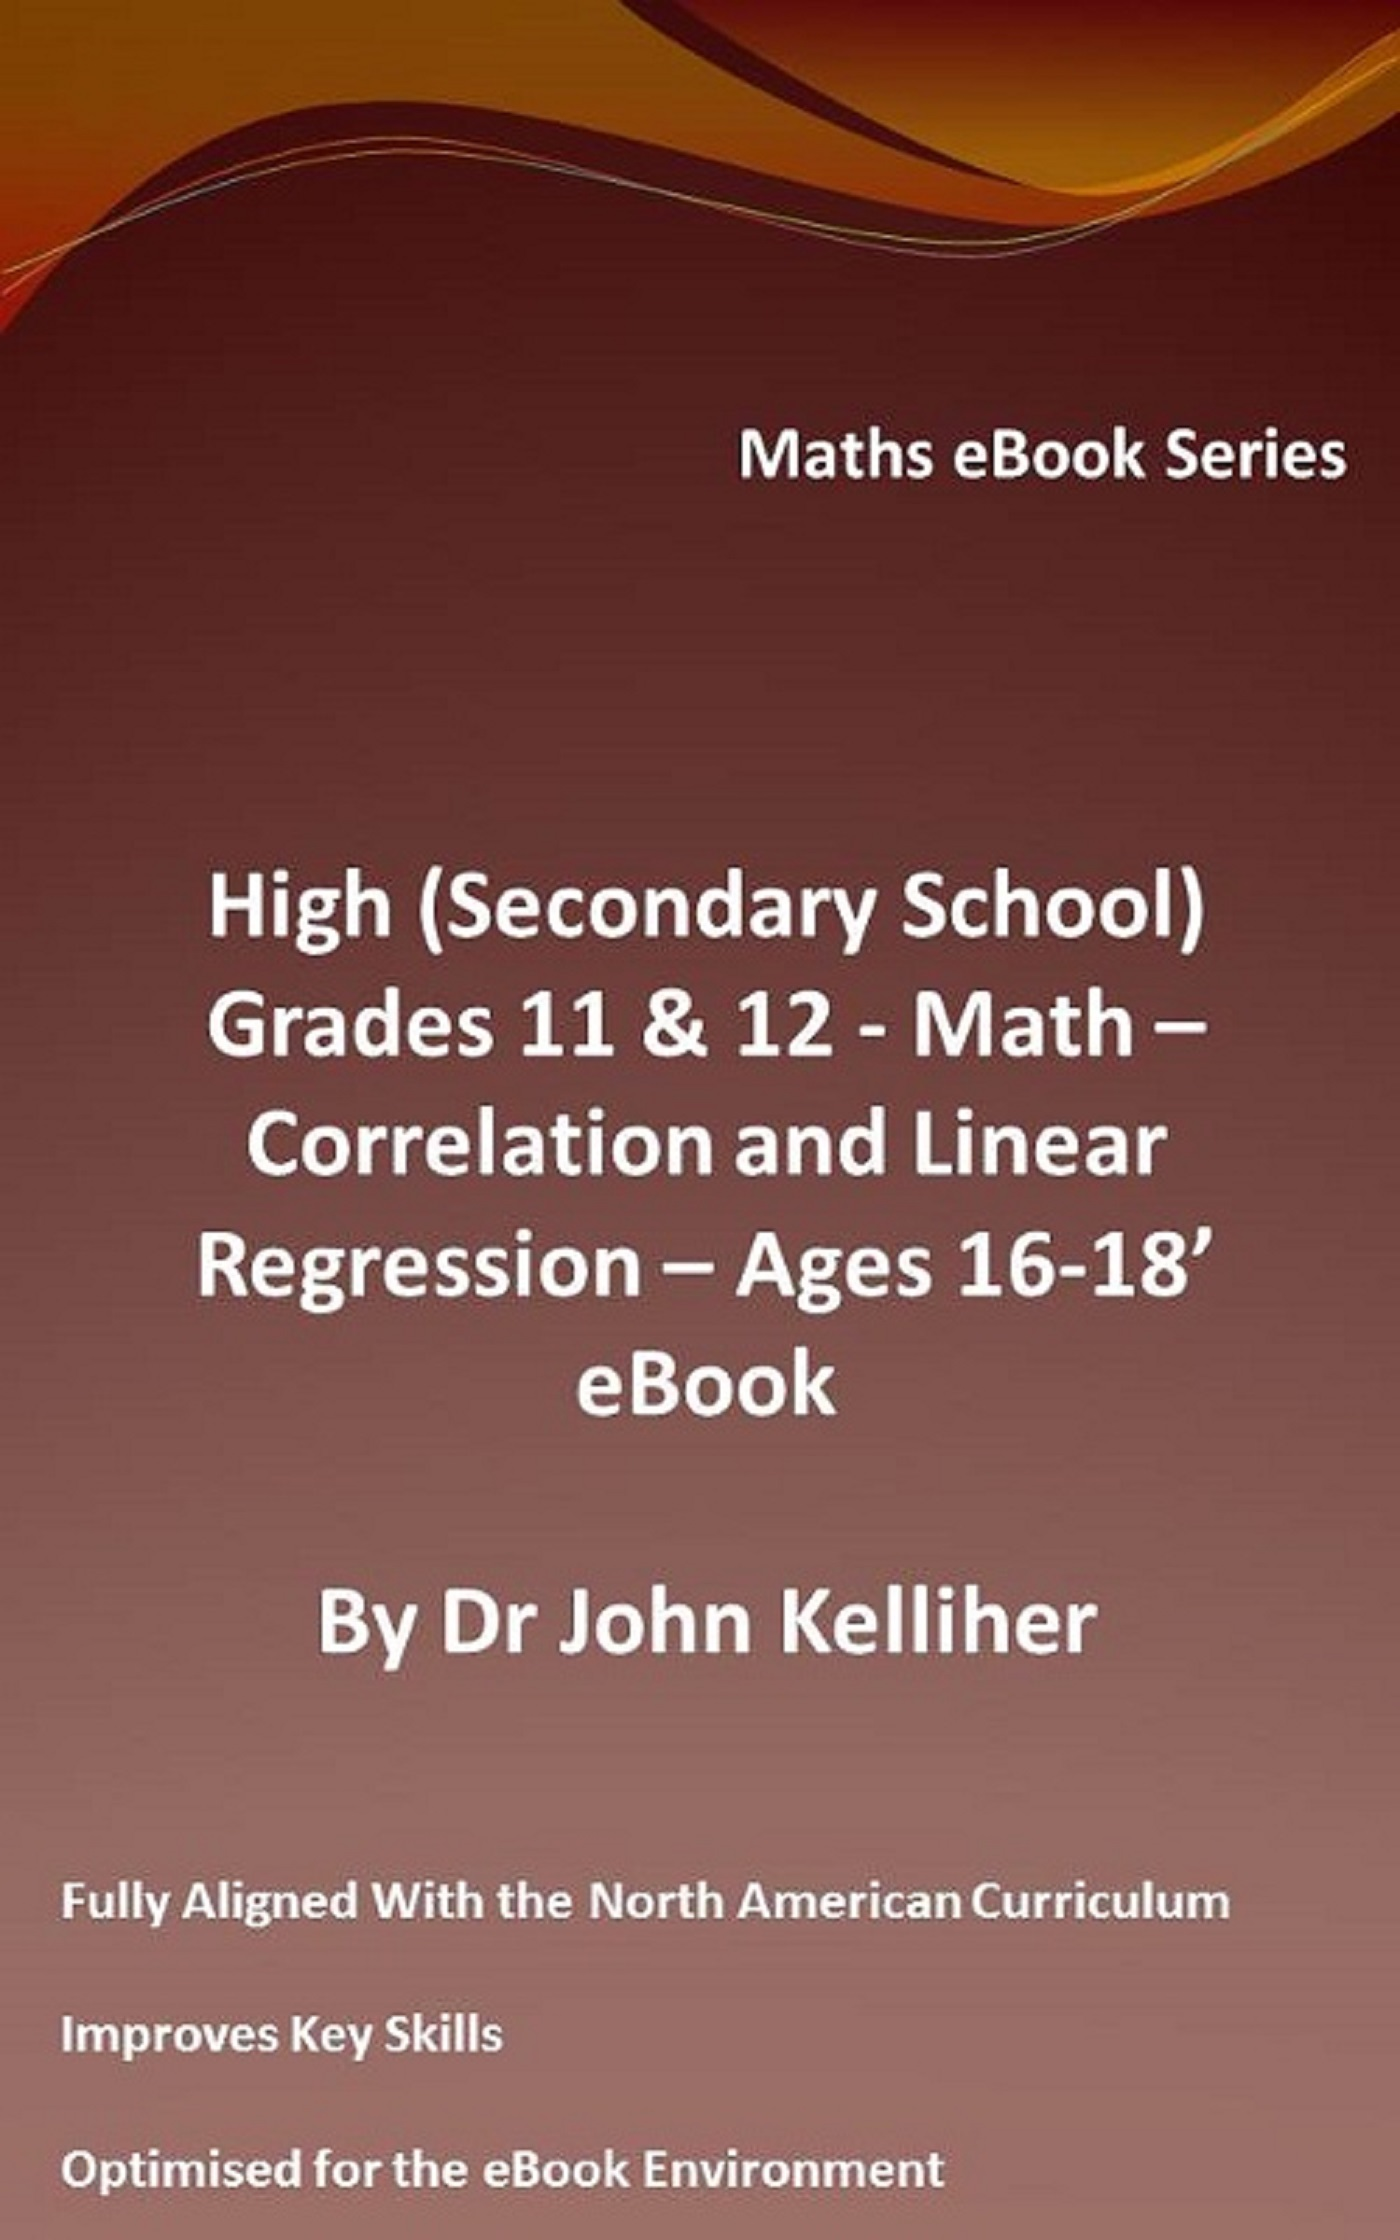 High (Secondary School) Grades 11 & 12 - Math - Correlation and Linear Regression - Ages 16-18 - Cover Sheet